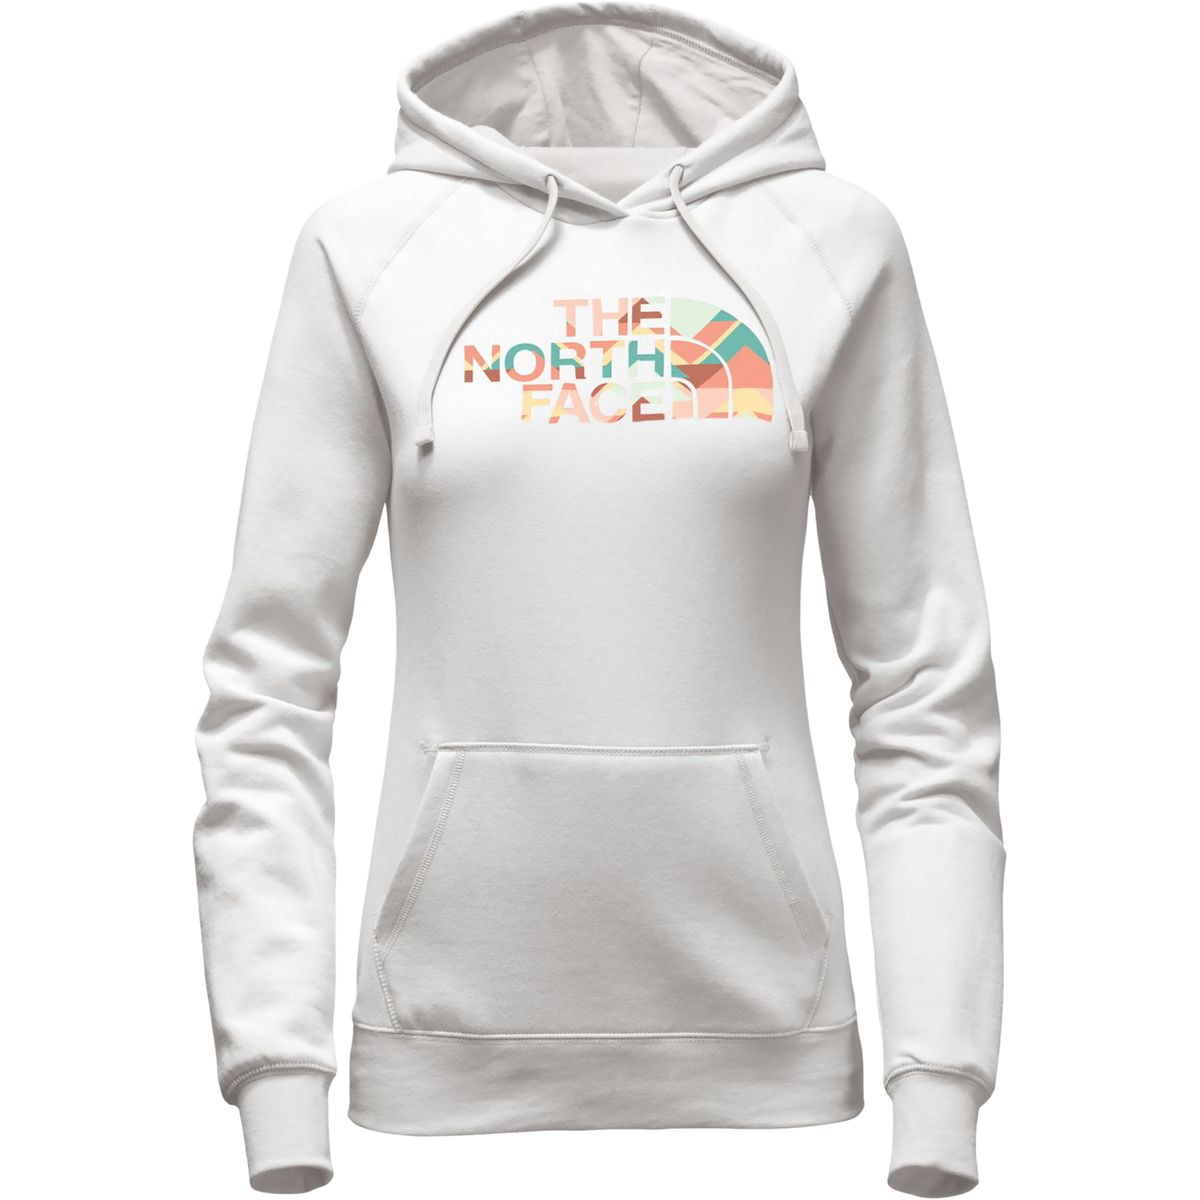 The North Face Patterned Half Dome Pullover Hoodie - Women